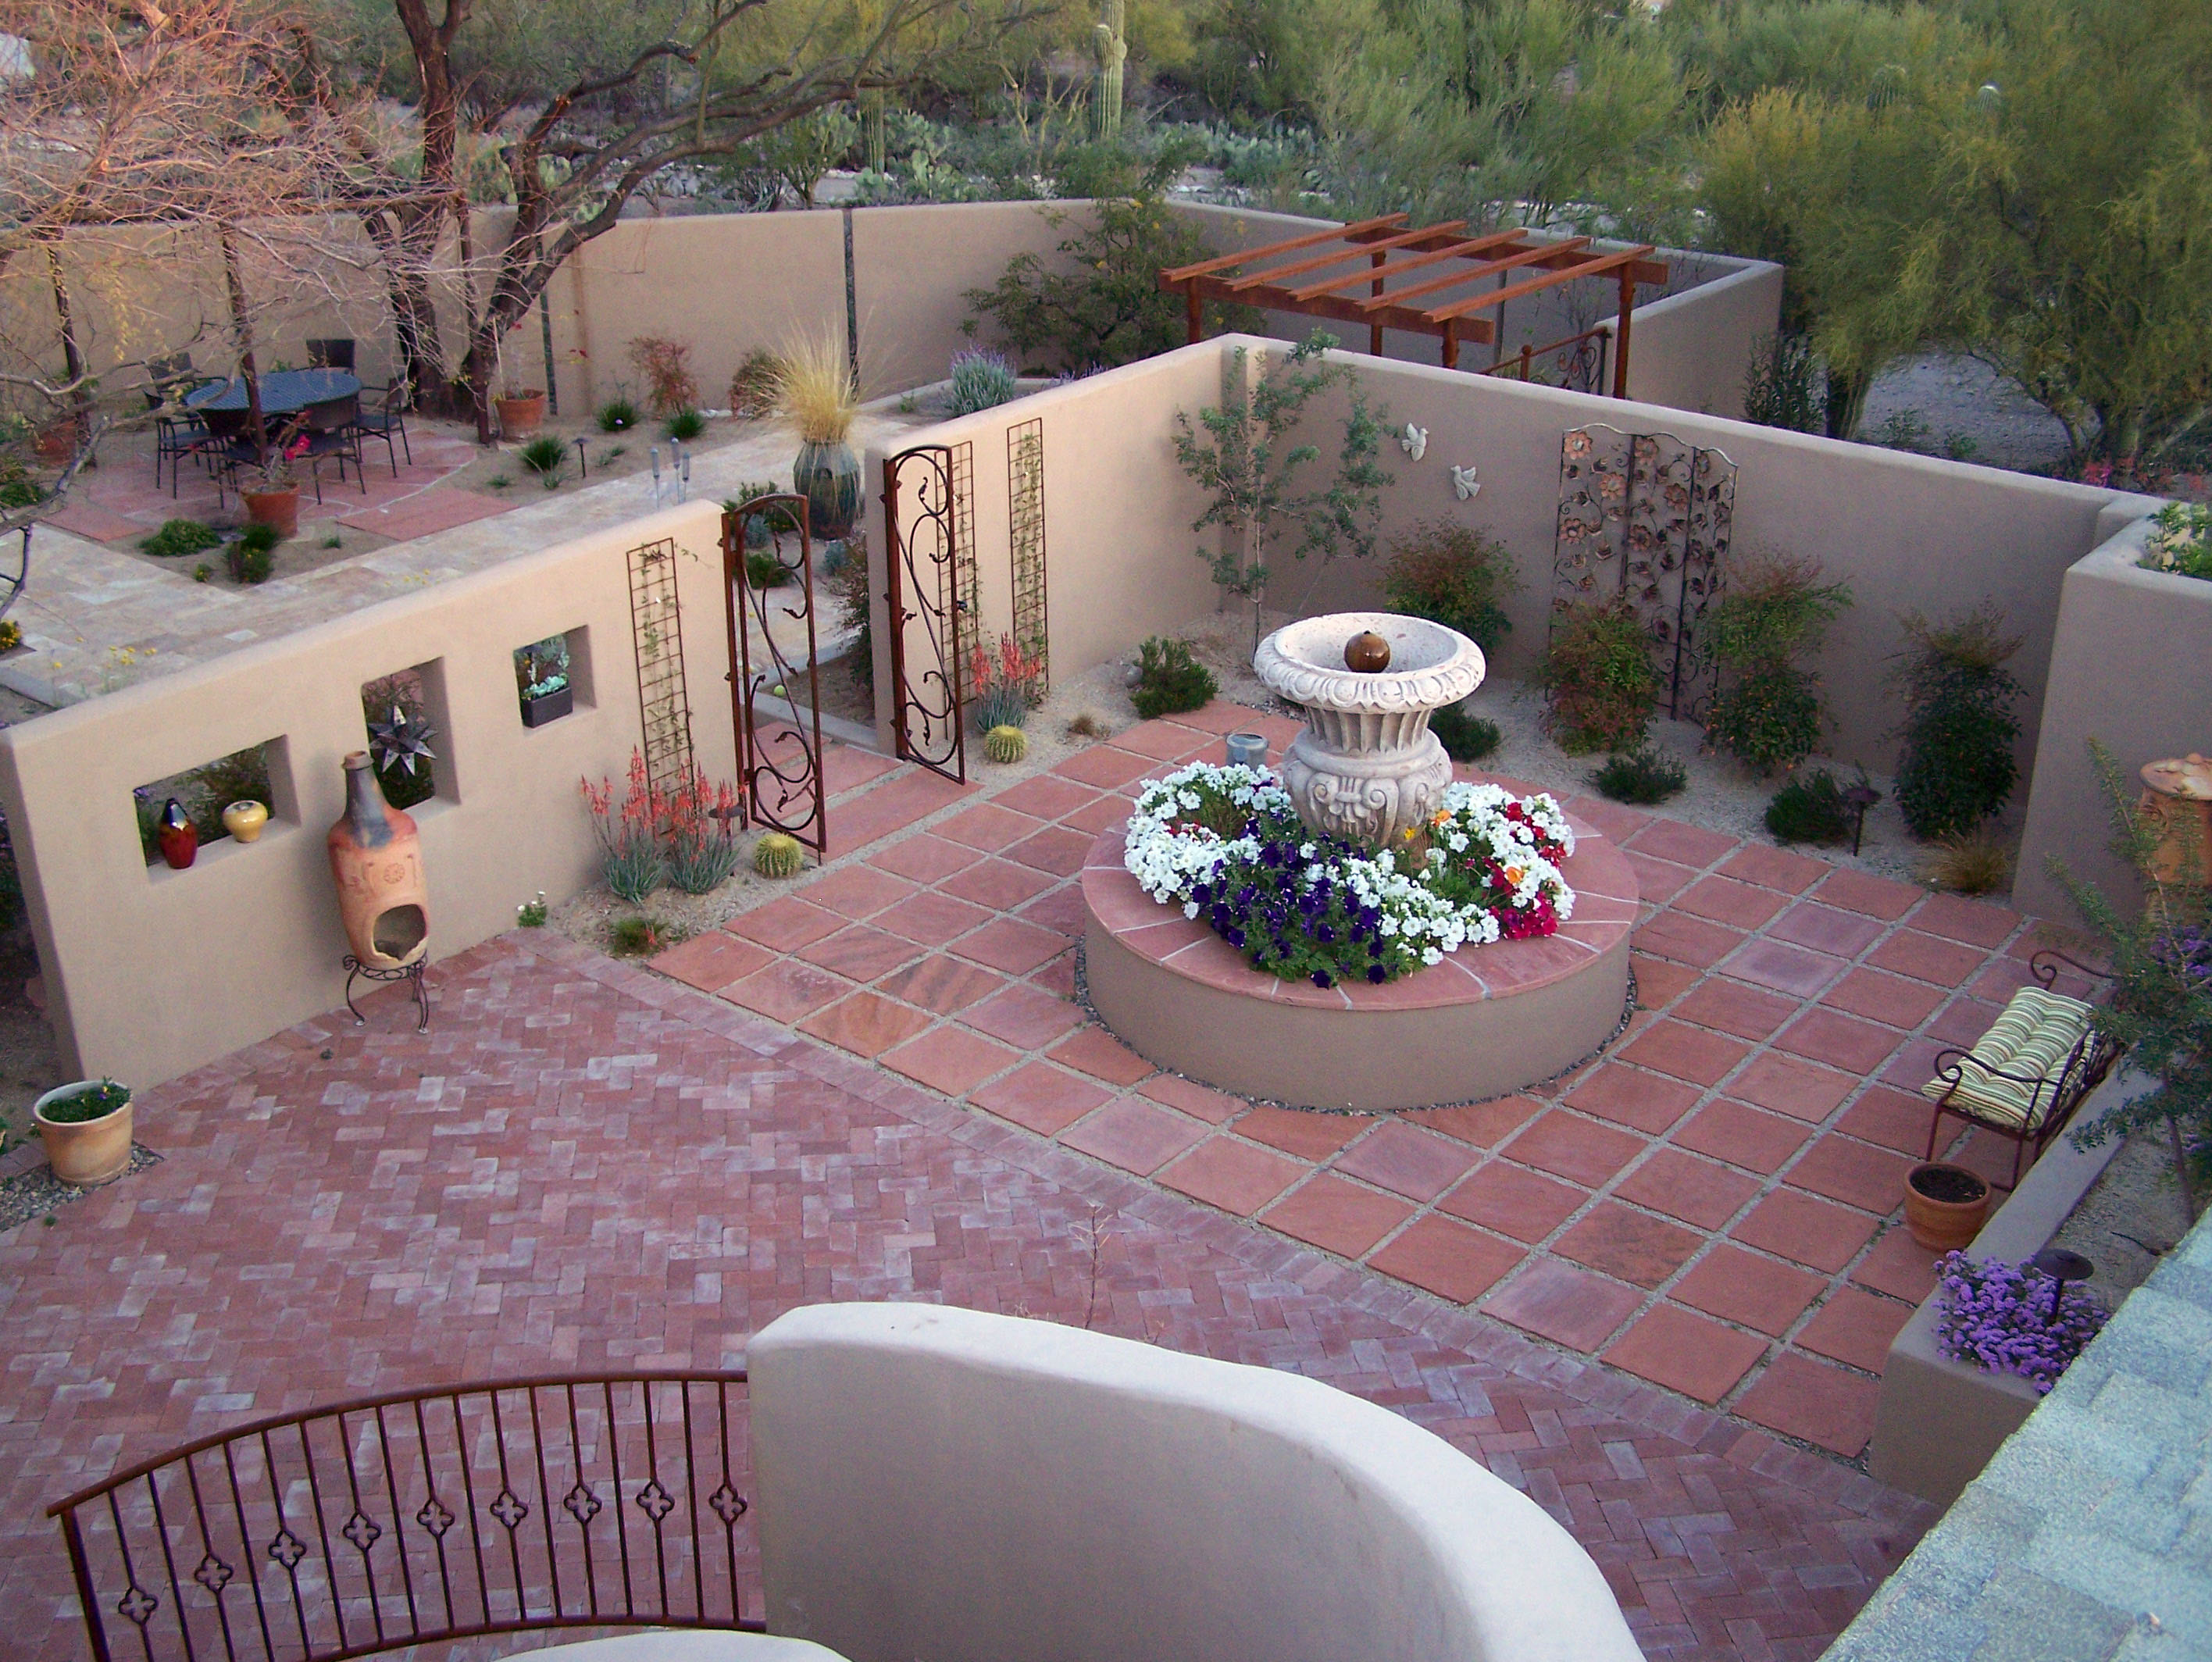 Thinking Big for a Backyard Redesign | The Lakota Group on Courtyard Patio Ideas id=61613